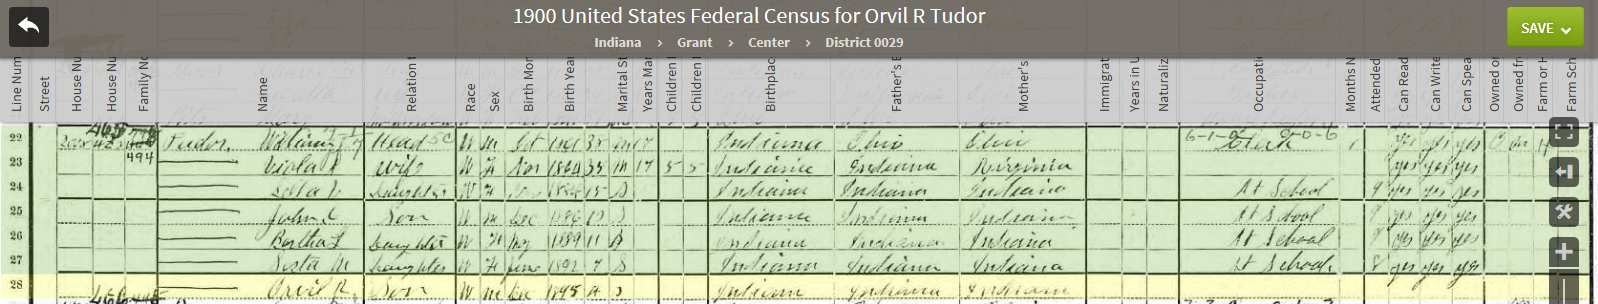 ORT 1900 US Federal Census